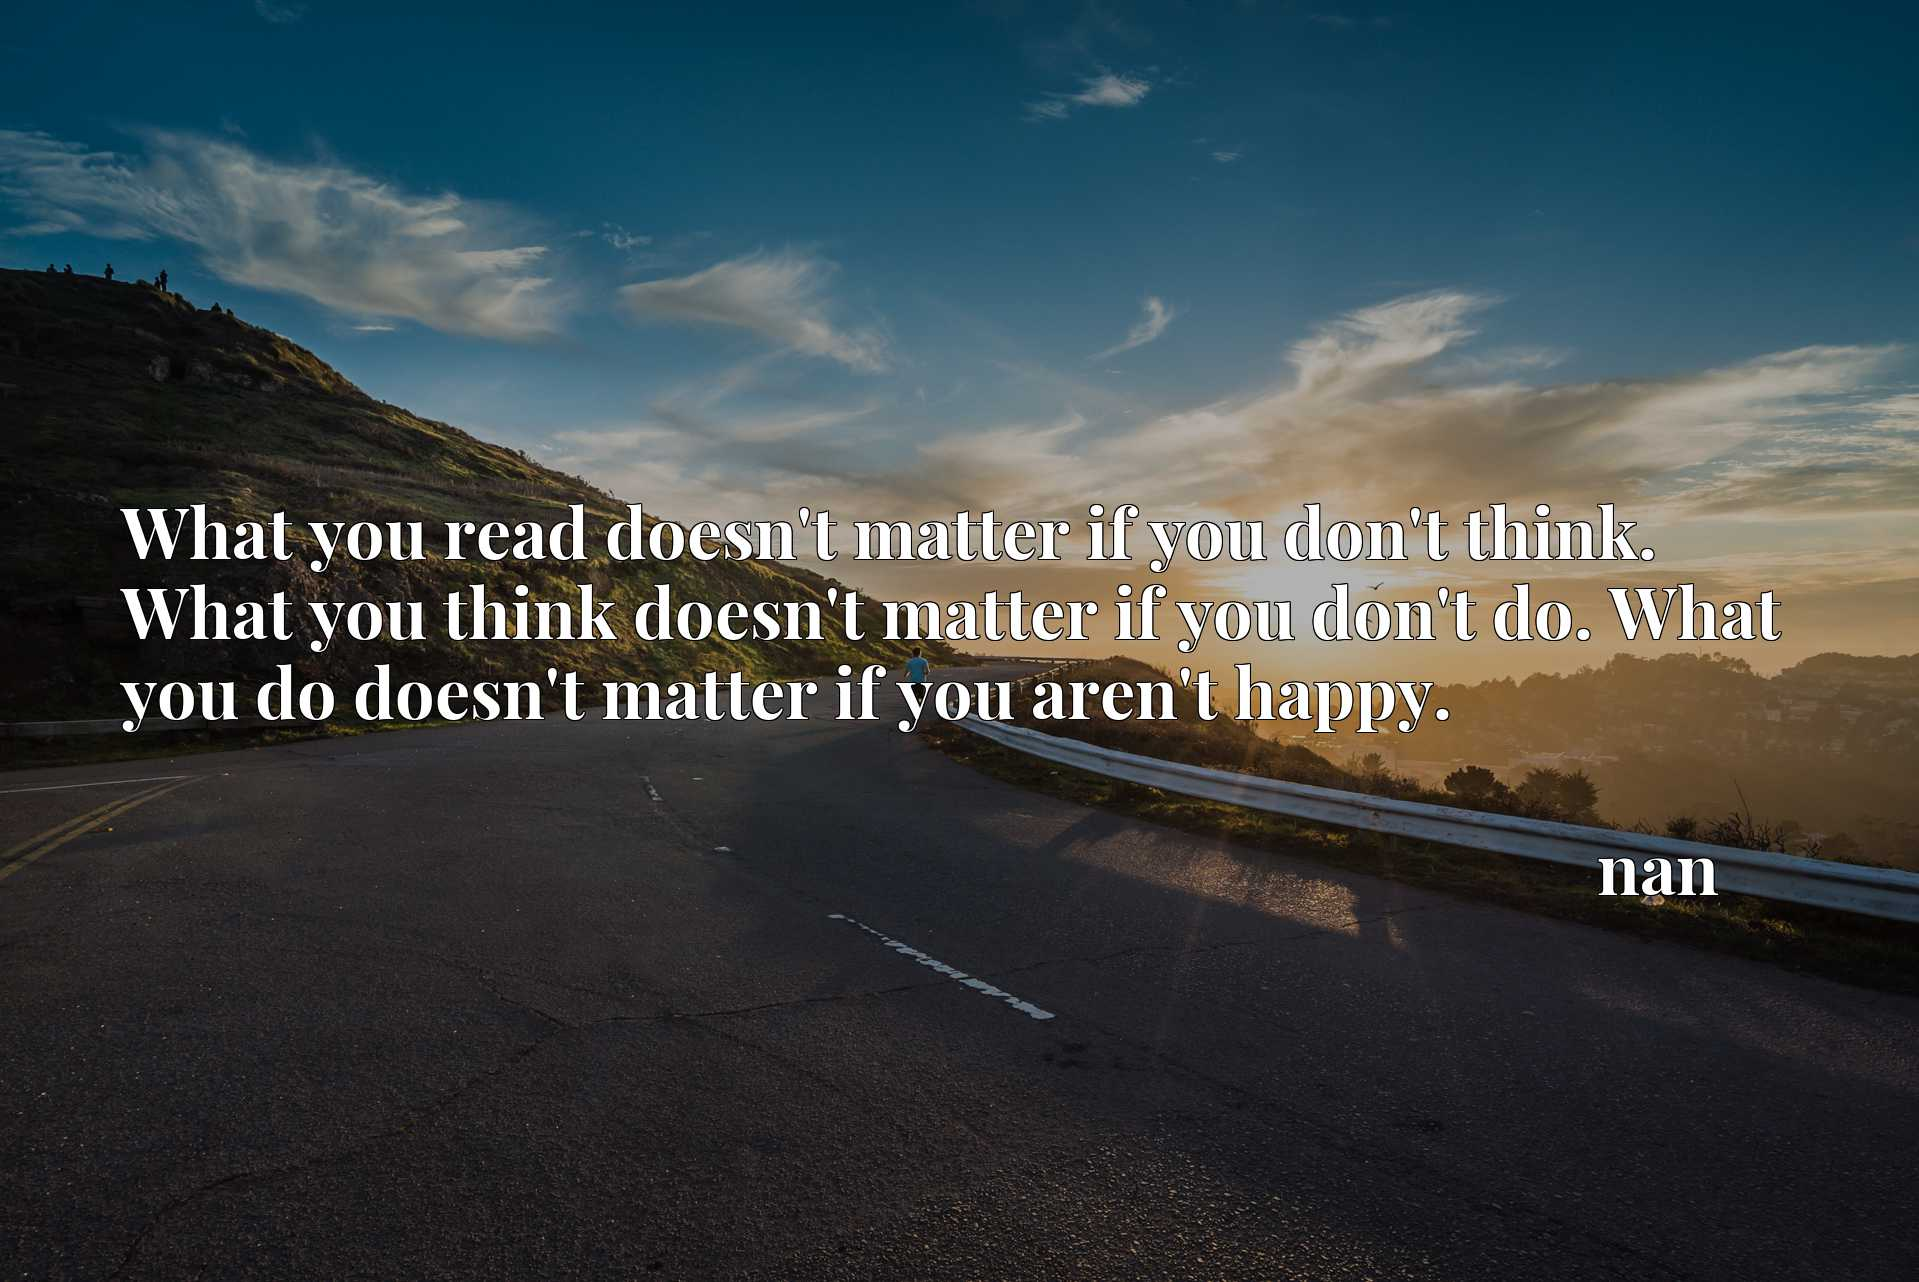 What you read doesn't matter if you don't think. What you think doesn't matter if you don't do. What you do doesn't matter if you aren't happy.